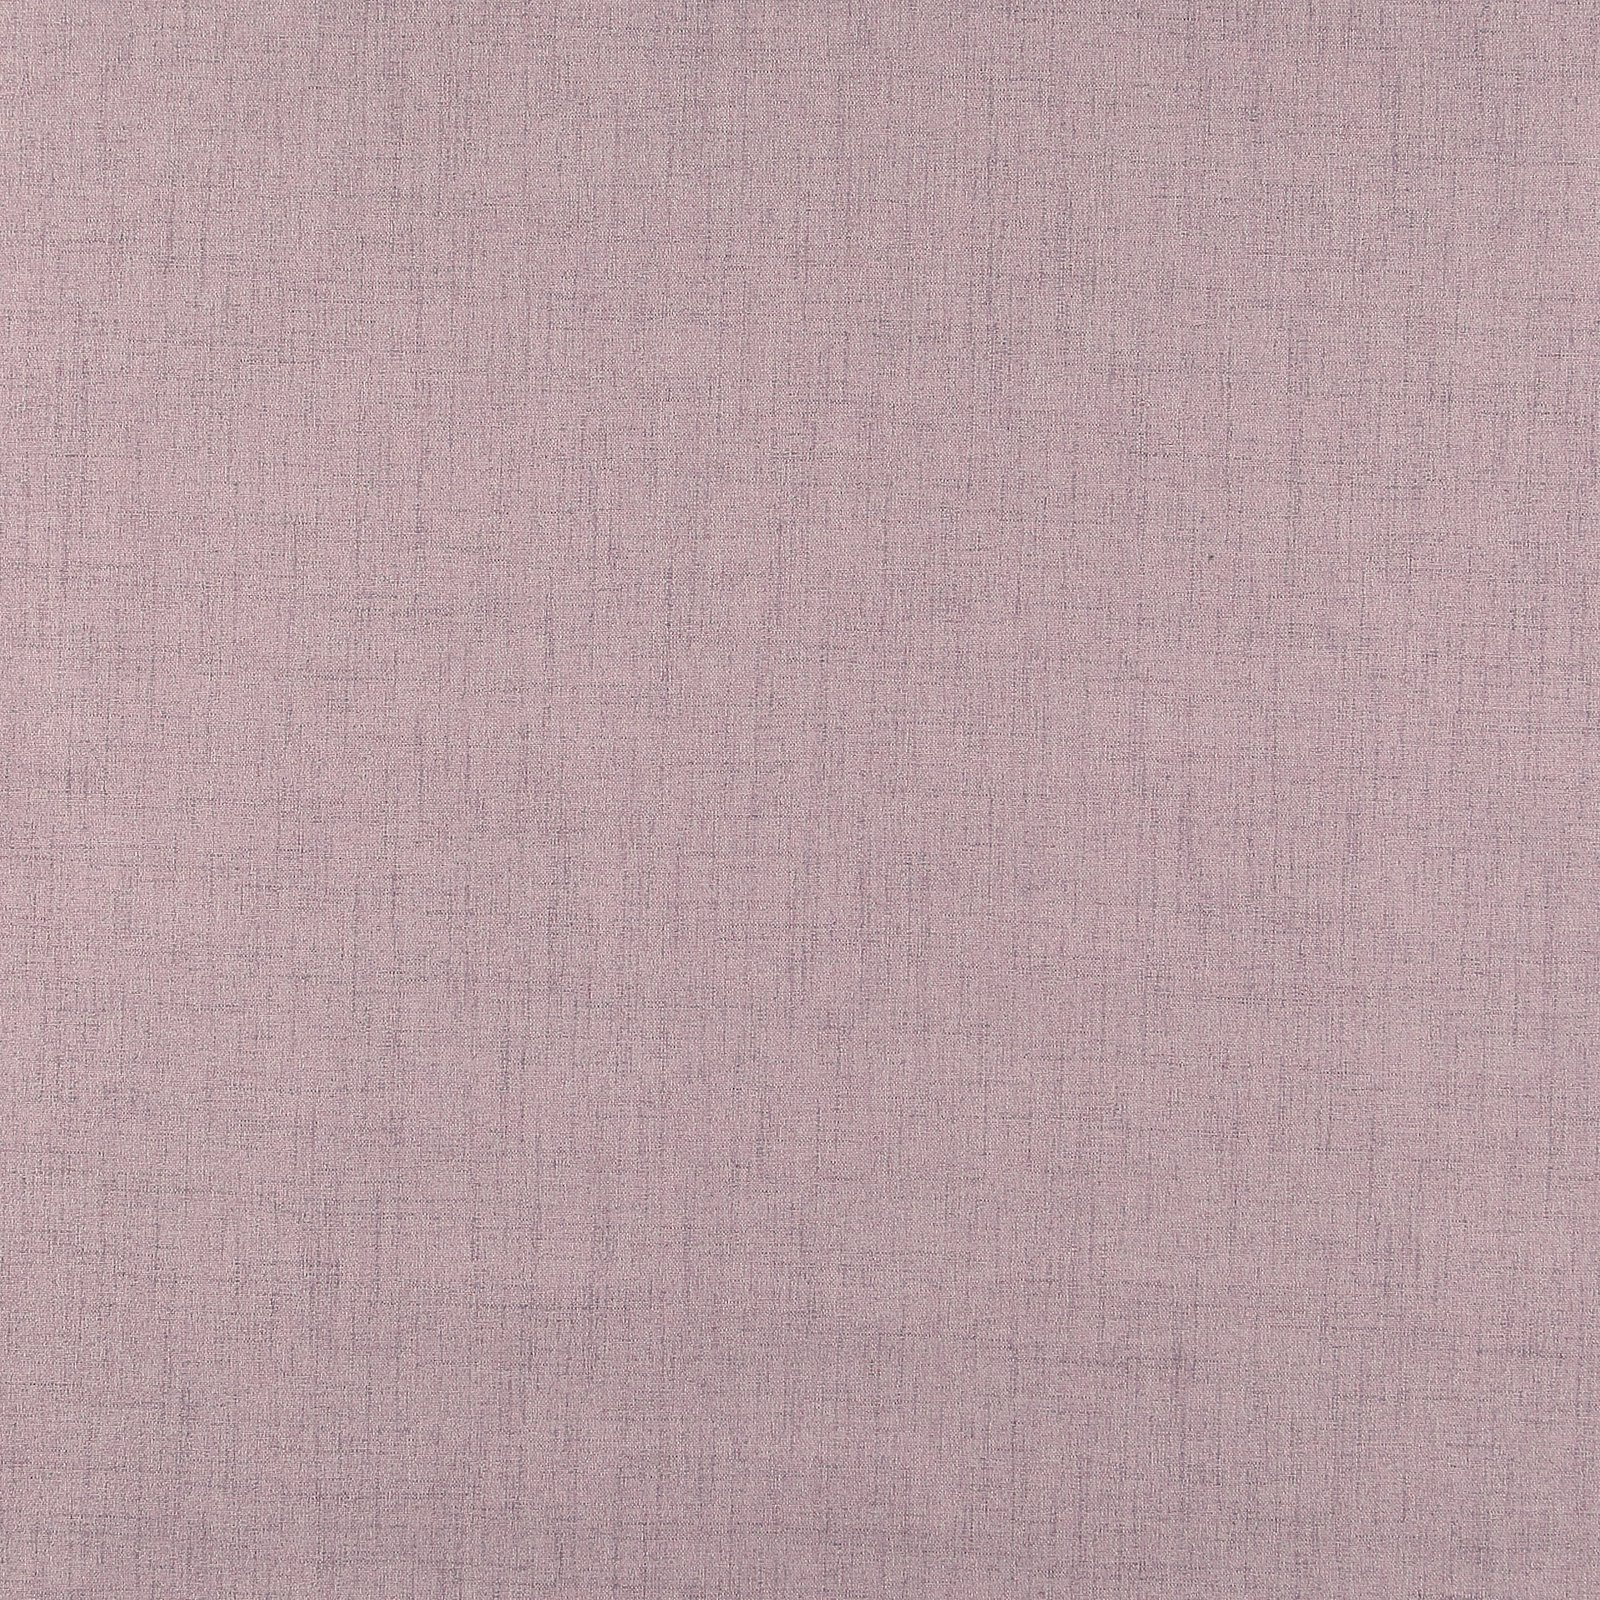 Upholstery fabric w/backing dusty violet 824051_pack_sp